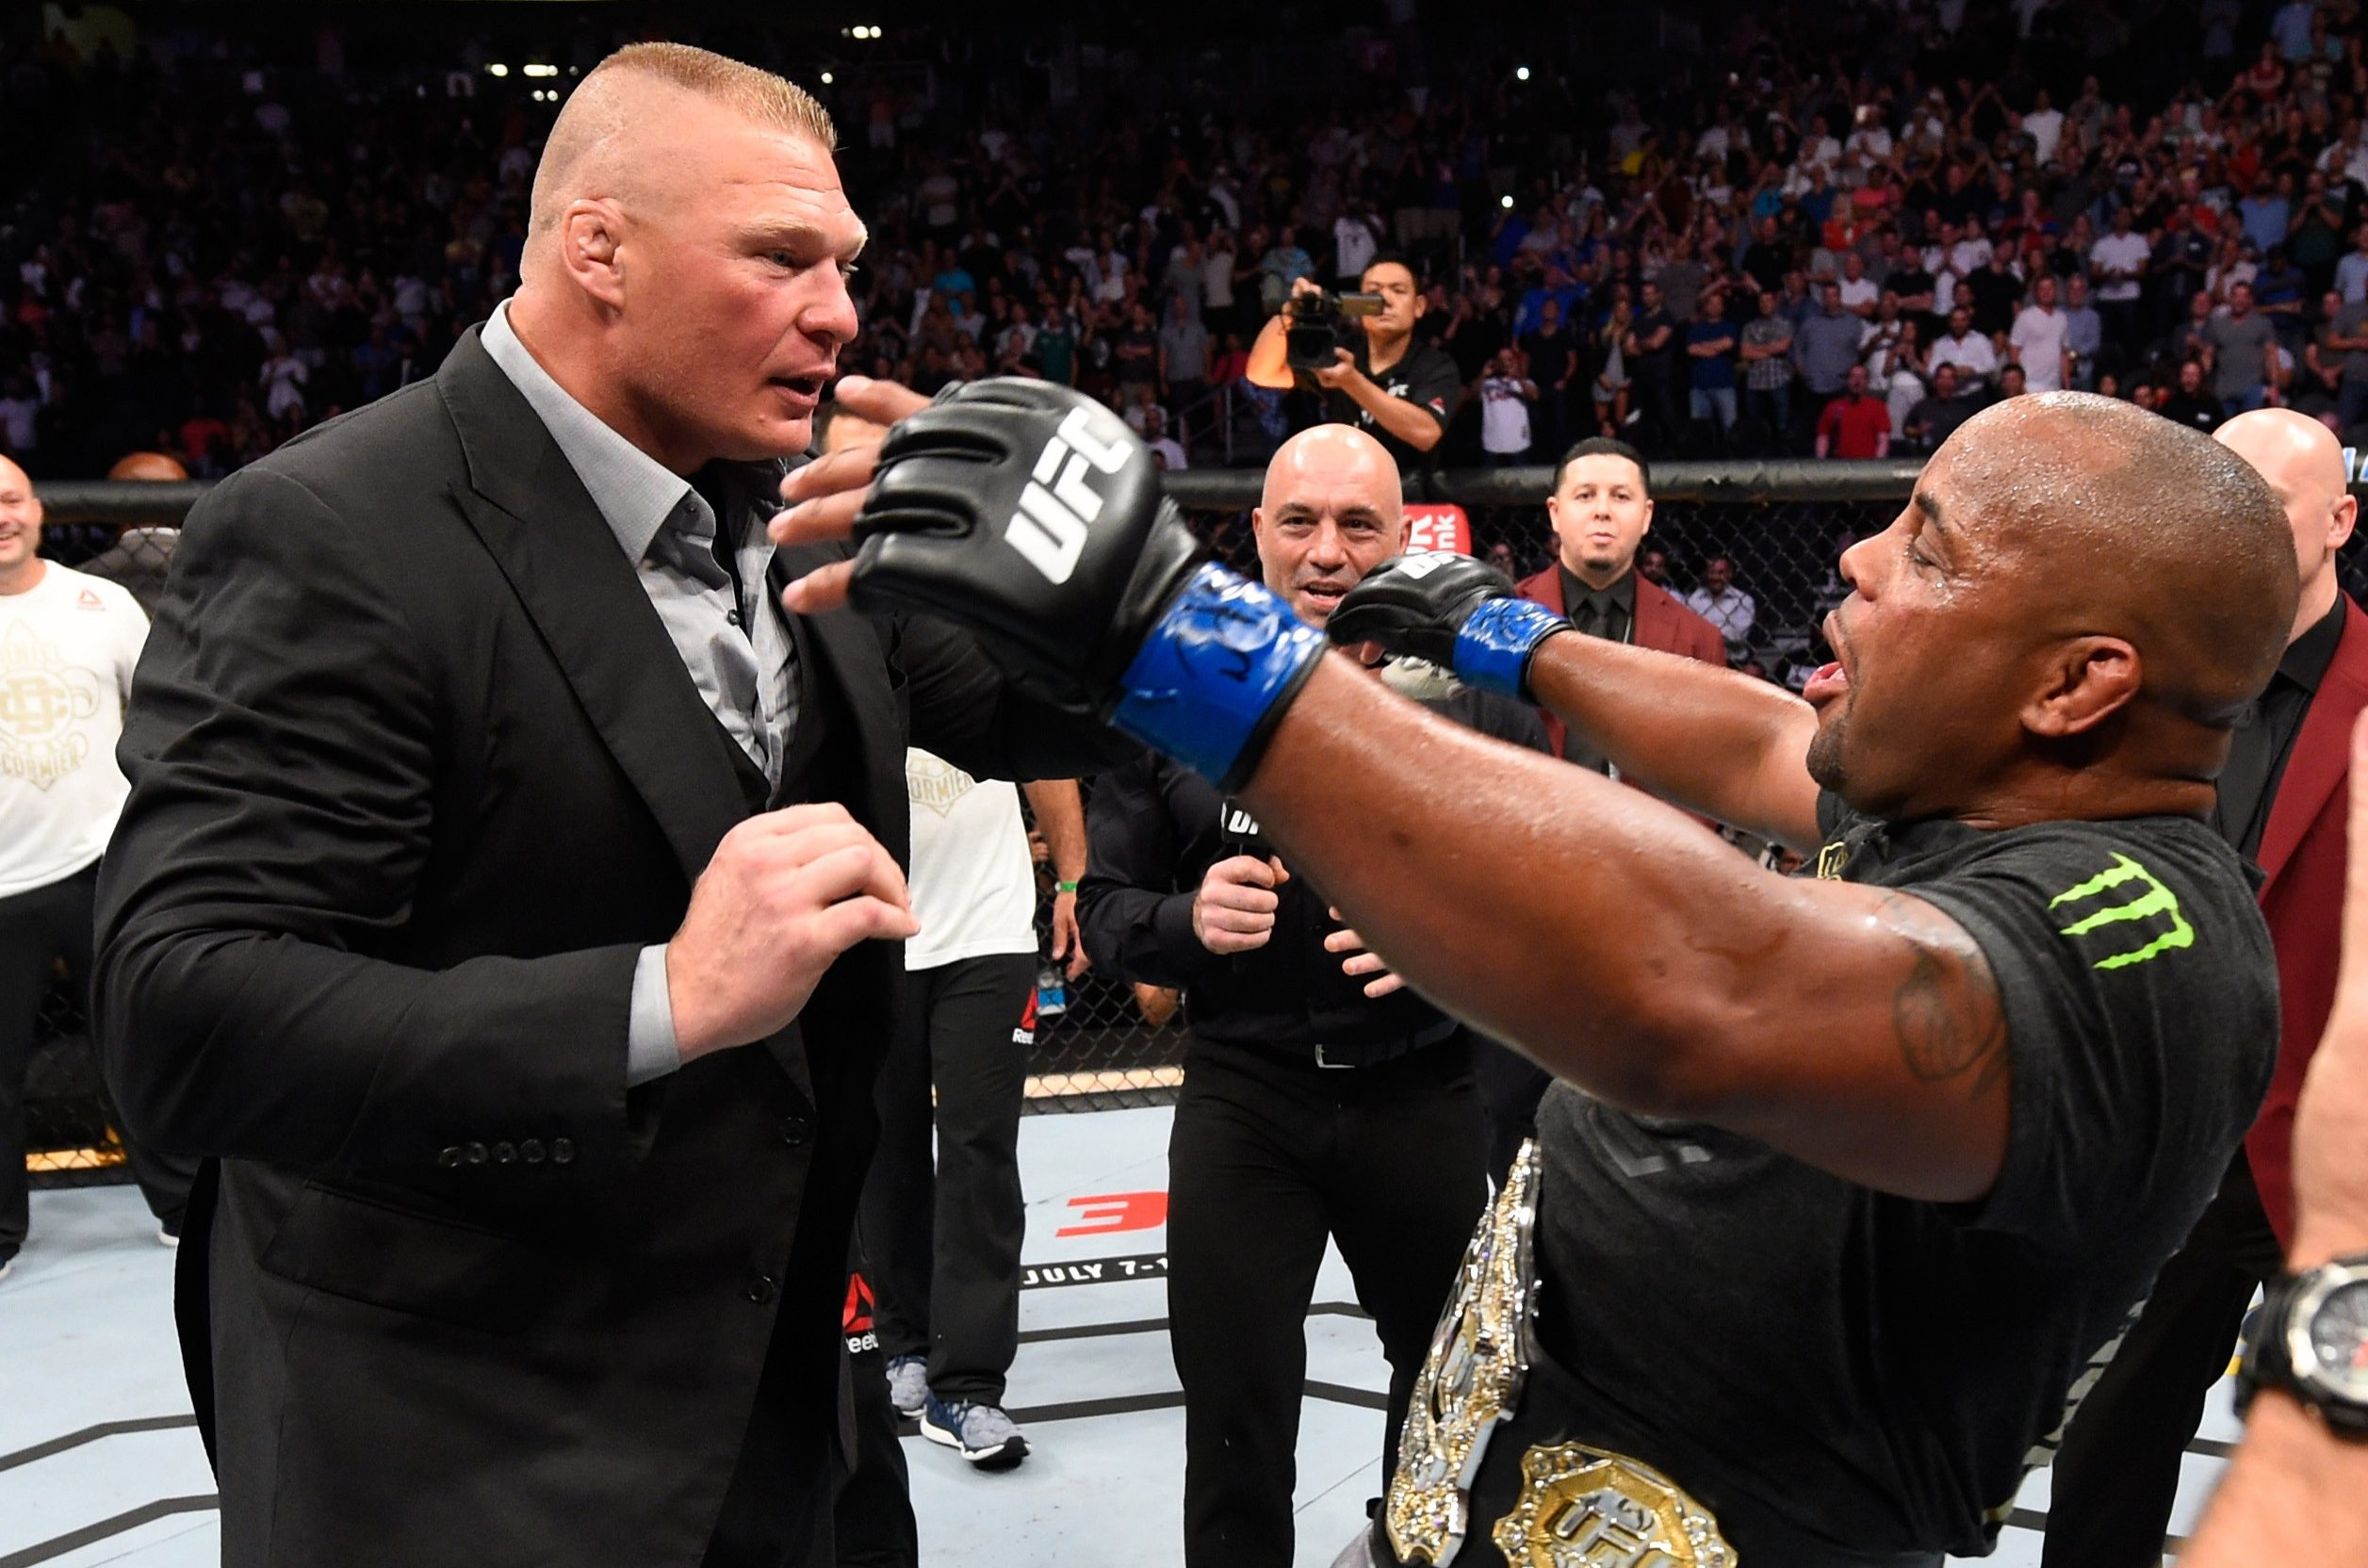 UFC heavyweight champion Daniel Cormier is in line to fight WWE star Brock Lesnar, according to UFC president Dana White